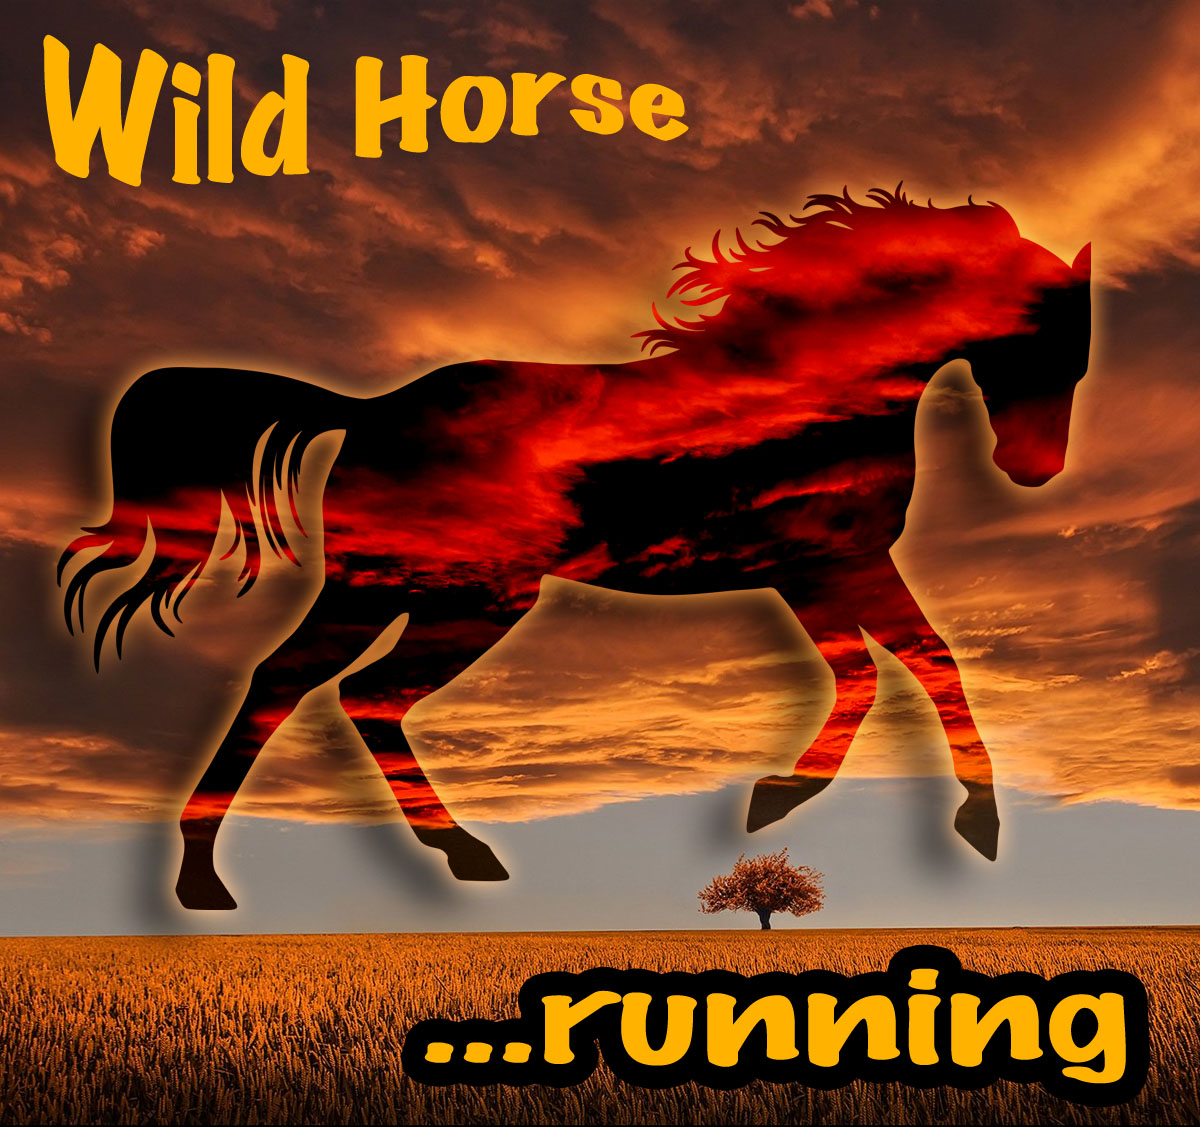 Wild Horse Running Free Music For Commercial Or Non Commercial Videos Synfiles Com